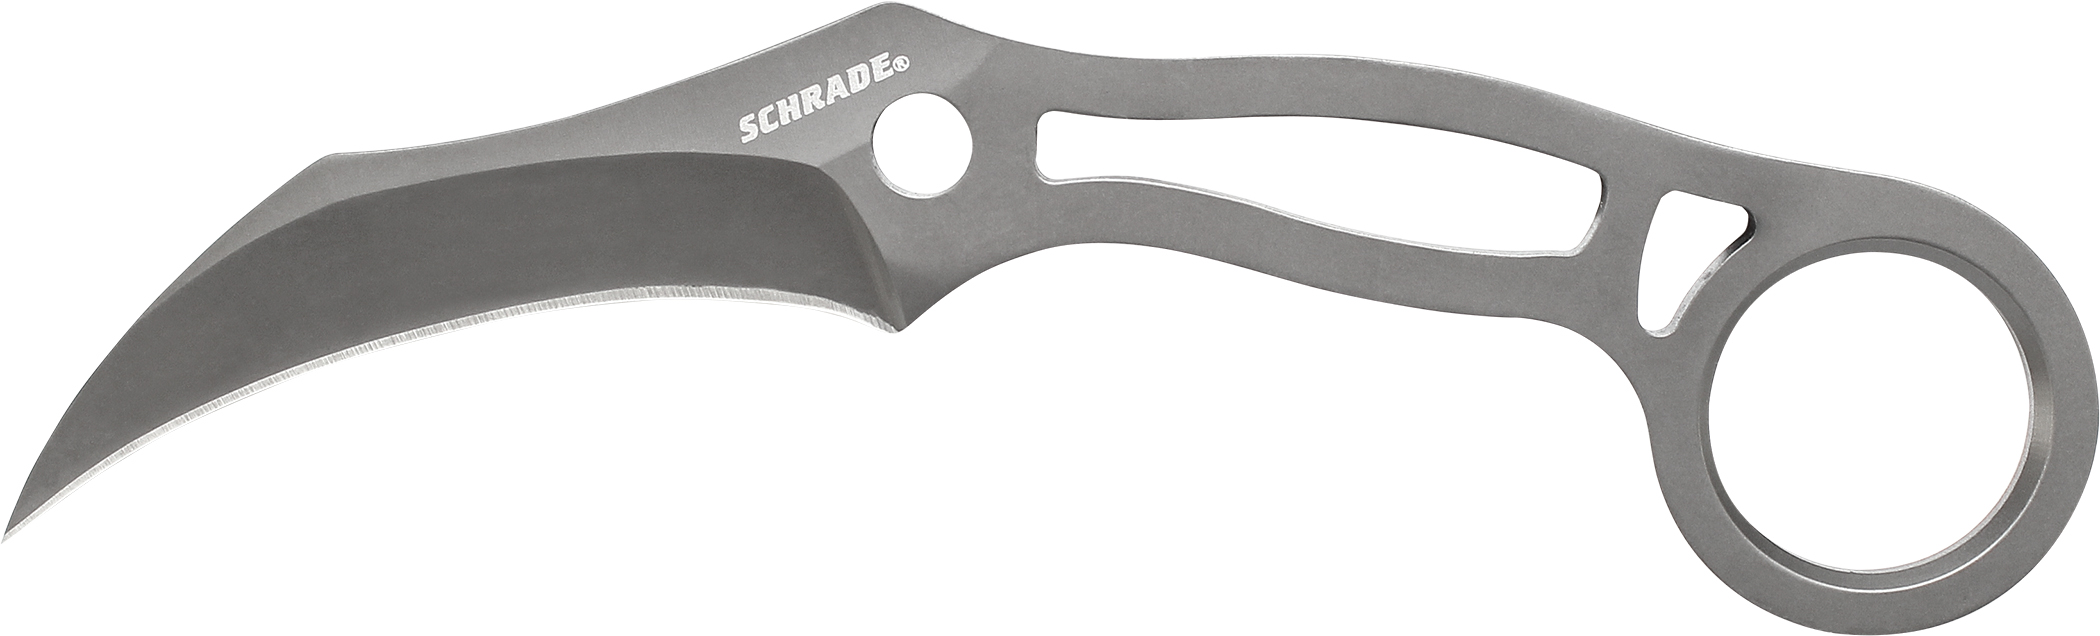 SCH111 - Schrade 9Cr18MoV Grey Ti Coated Karambit Neck Knife, Molded Sheath